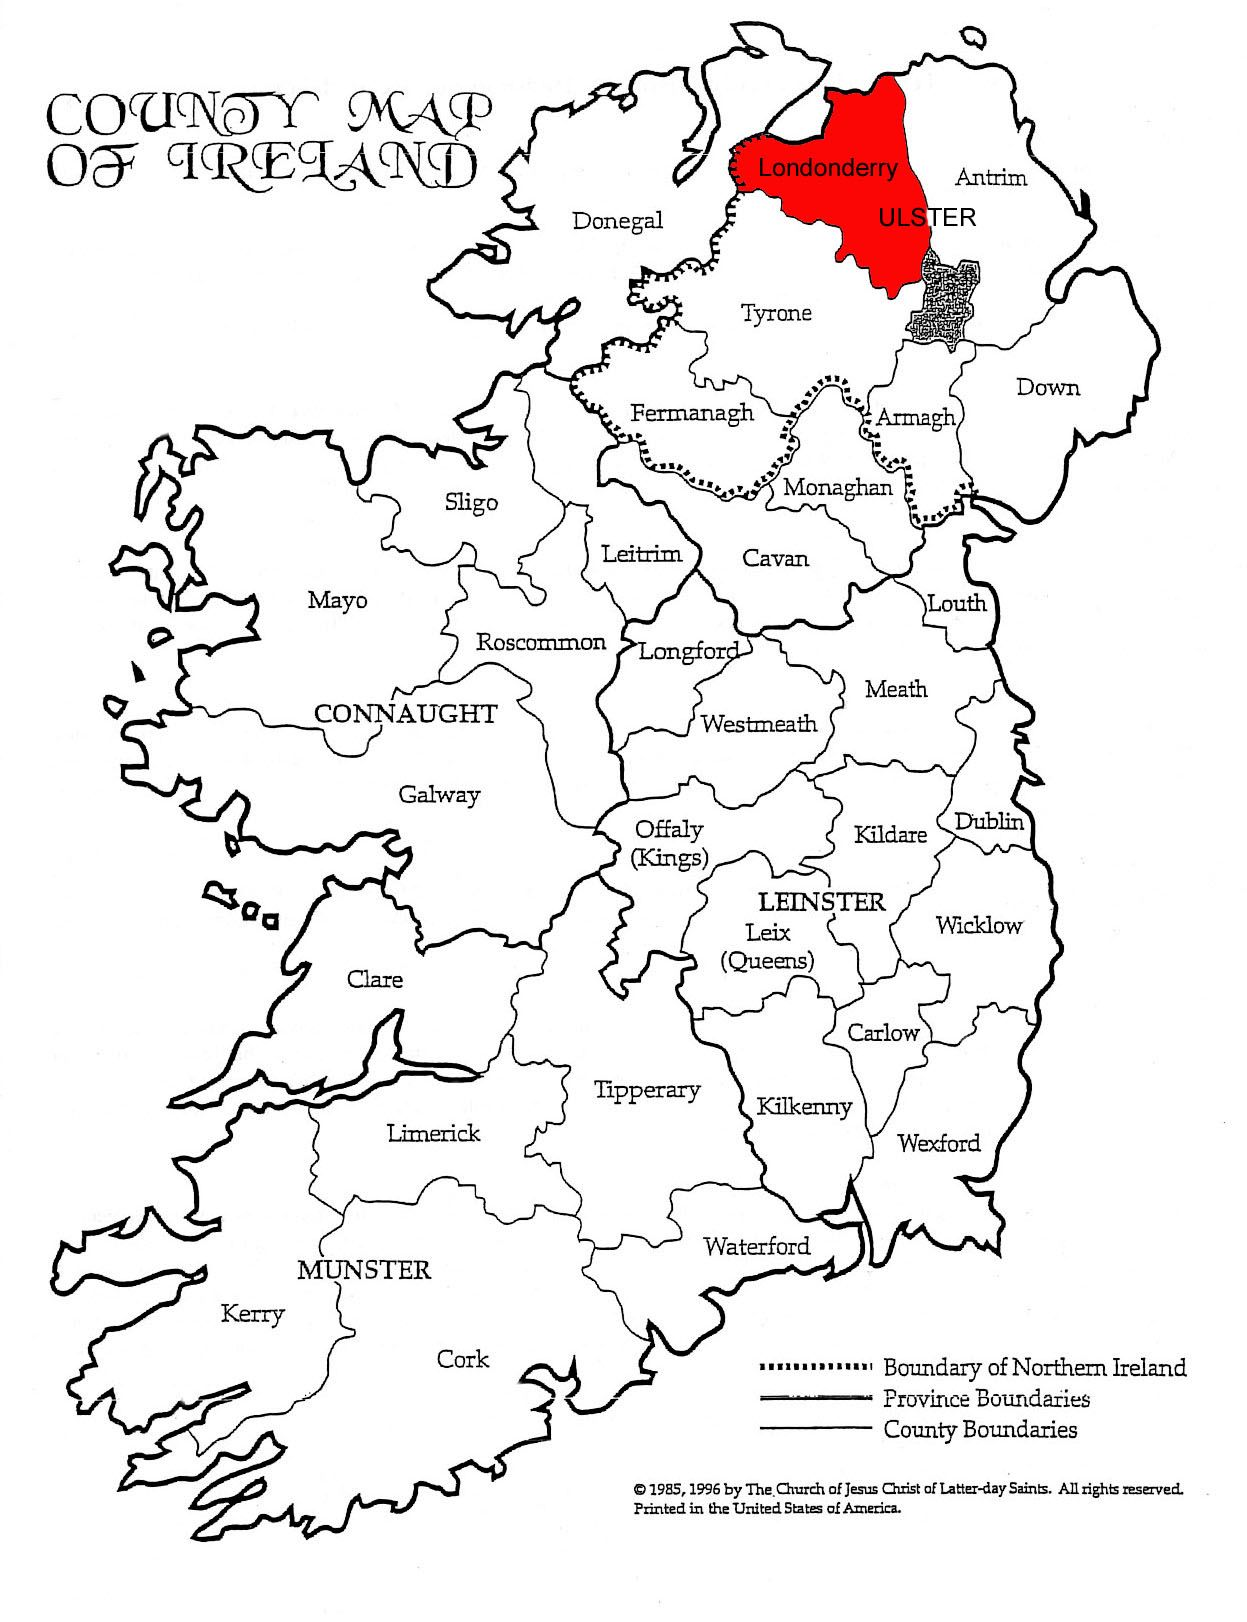 Background on Londonderry and Ulster County Londonderry or County